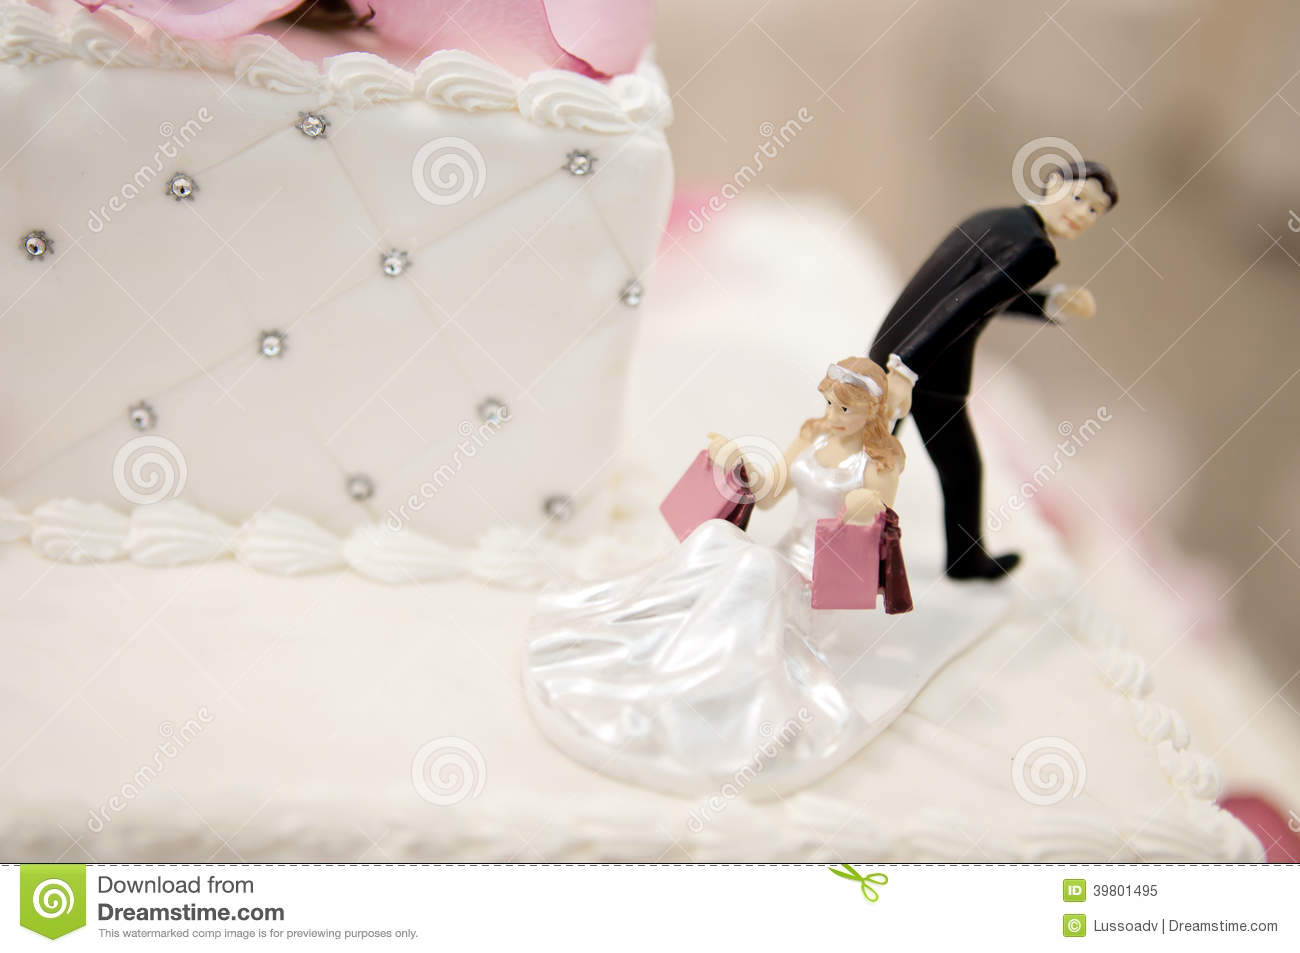 Bride And Groom Cake Toppers On A Wedding